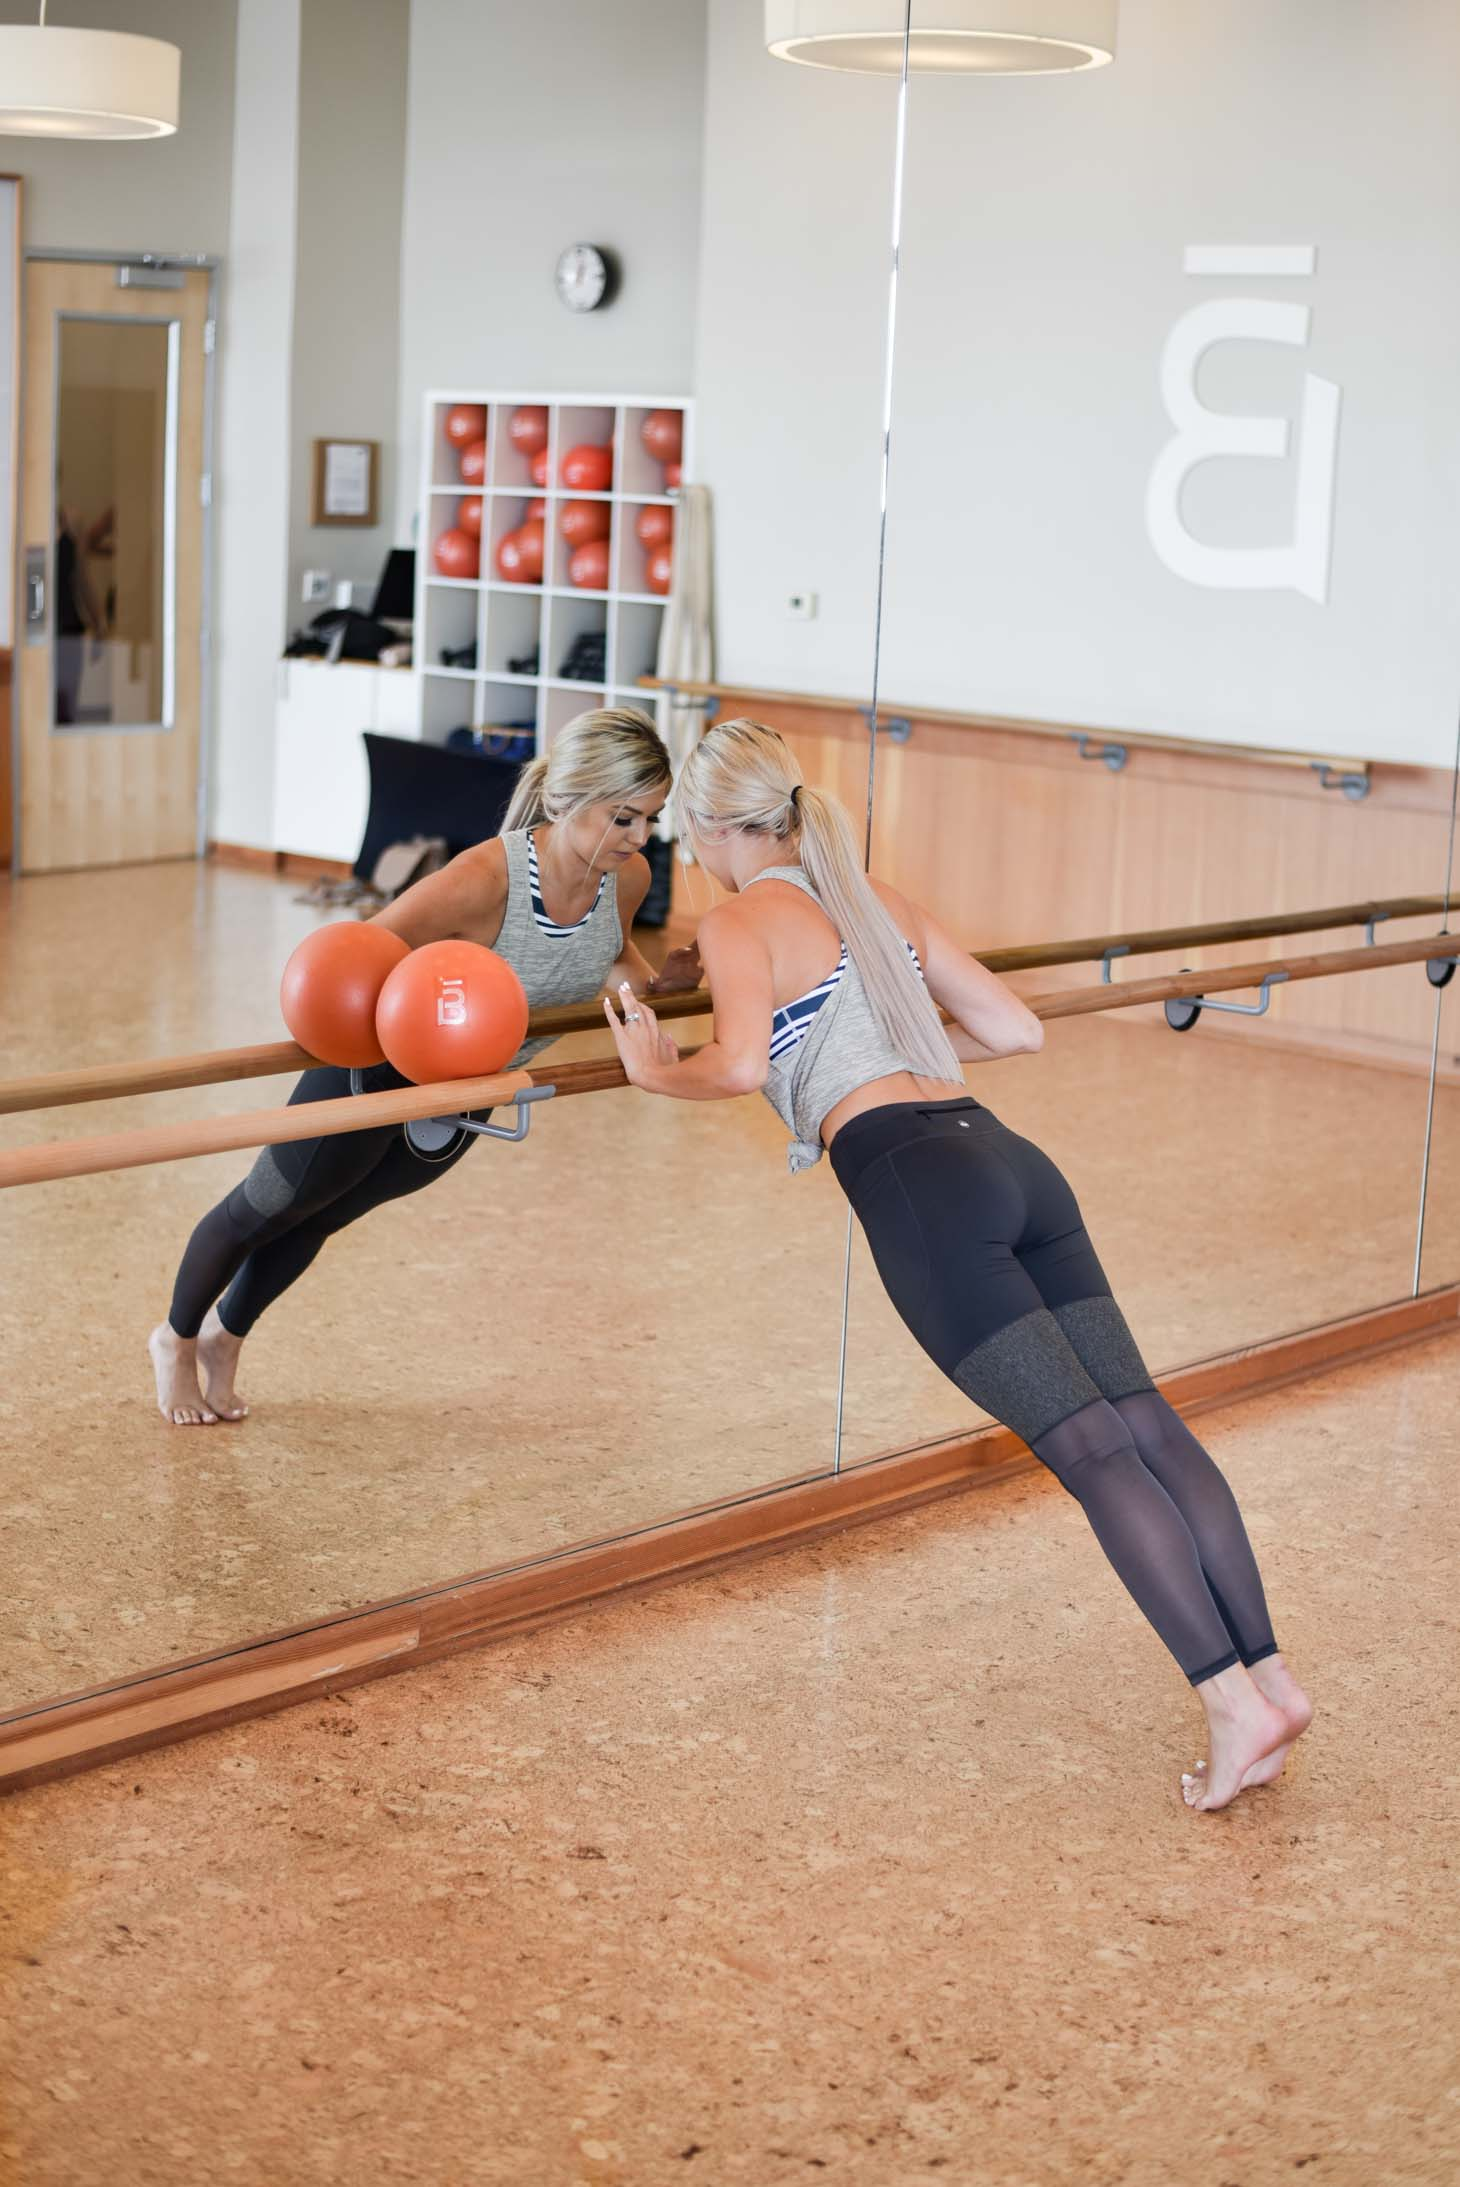 Erin Elizabeth of Wink and a Twirl shares her experience at Barre3 in Scottsdale, Arizona over the past month